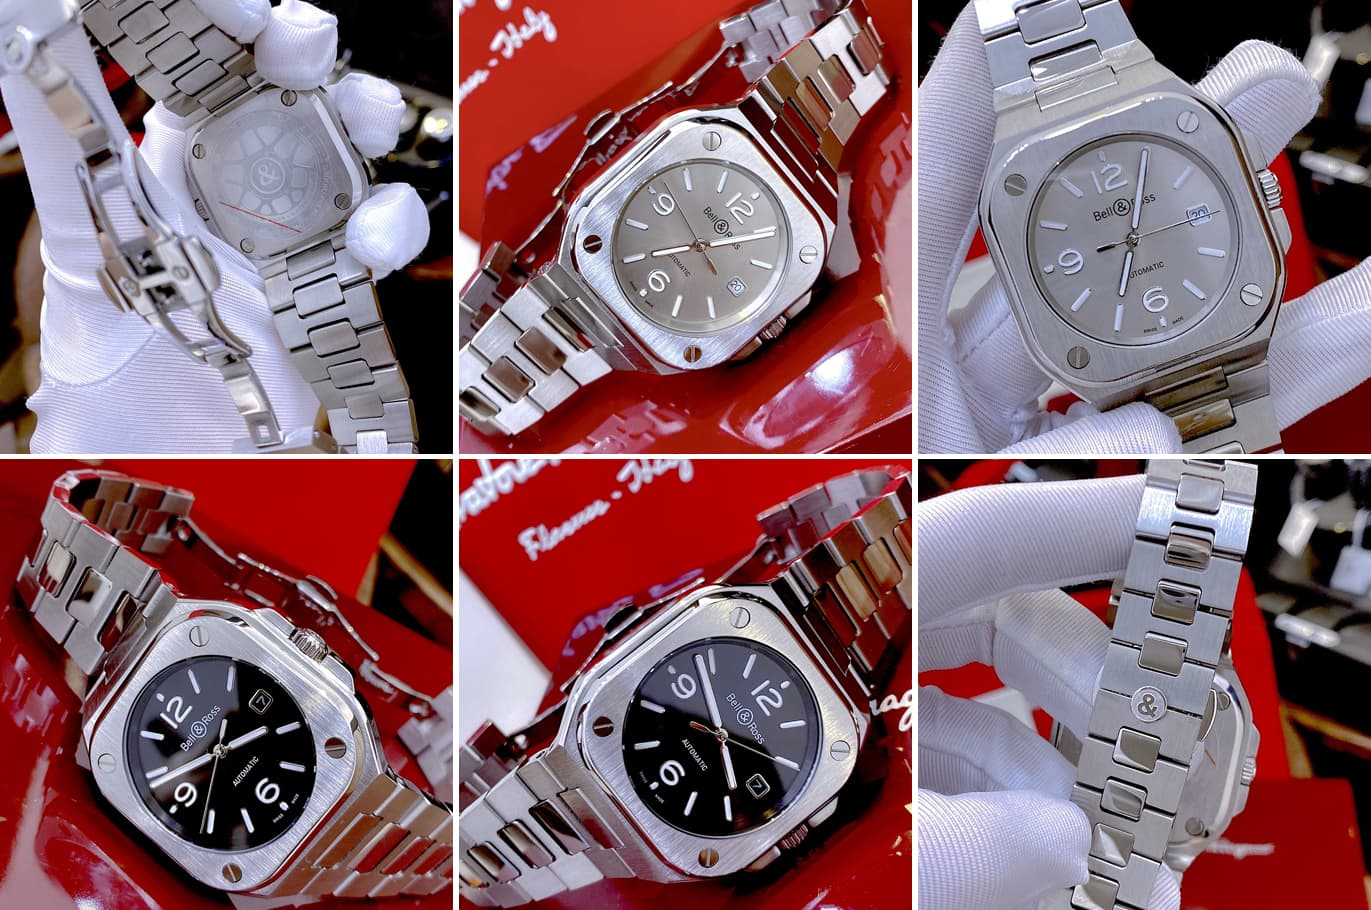 Hinh-anh-thuc-te-Dong-ho-MONTRE-BELL-ROLL-BR-05-LUXURY-SPORT-Automatic